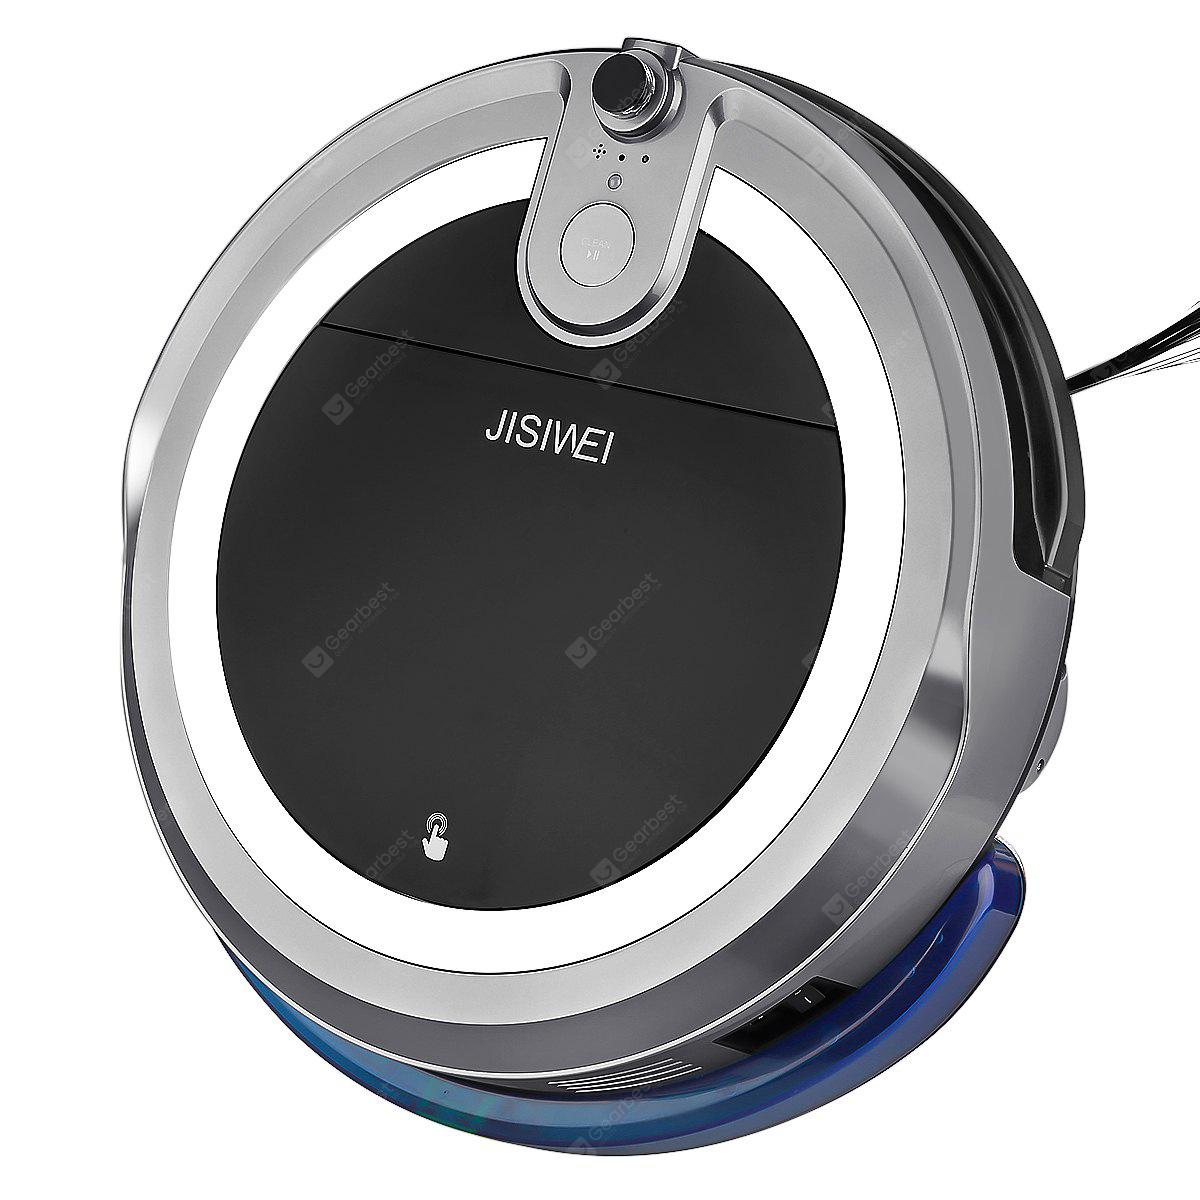 JISIWEI Vacuum Cleaning Robot i3 with Built-in HD Camera APP Remote Control for Android and iOS Smartphone - GRAY UK PLUG